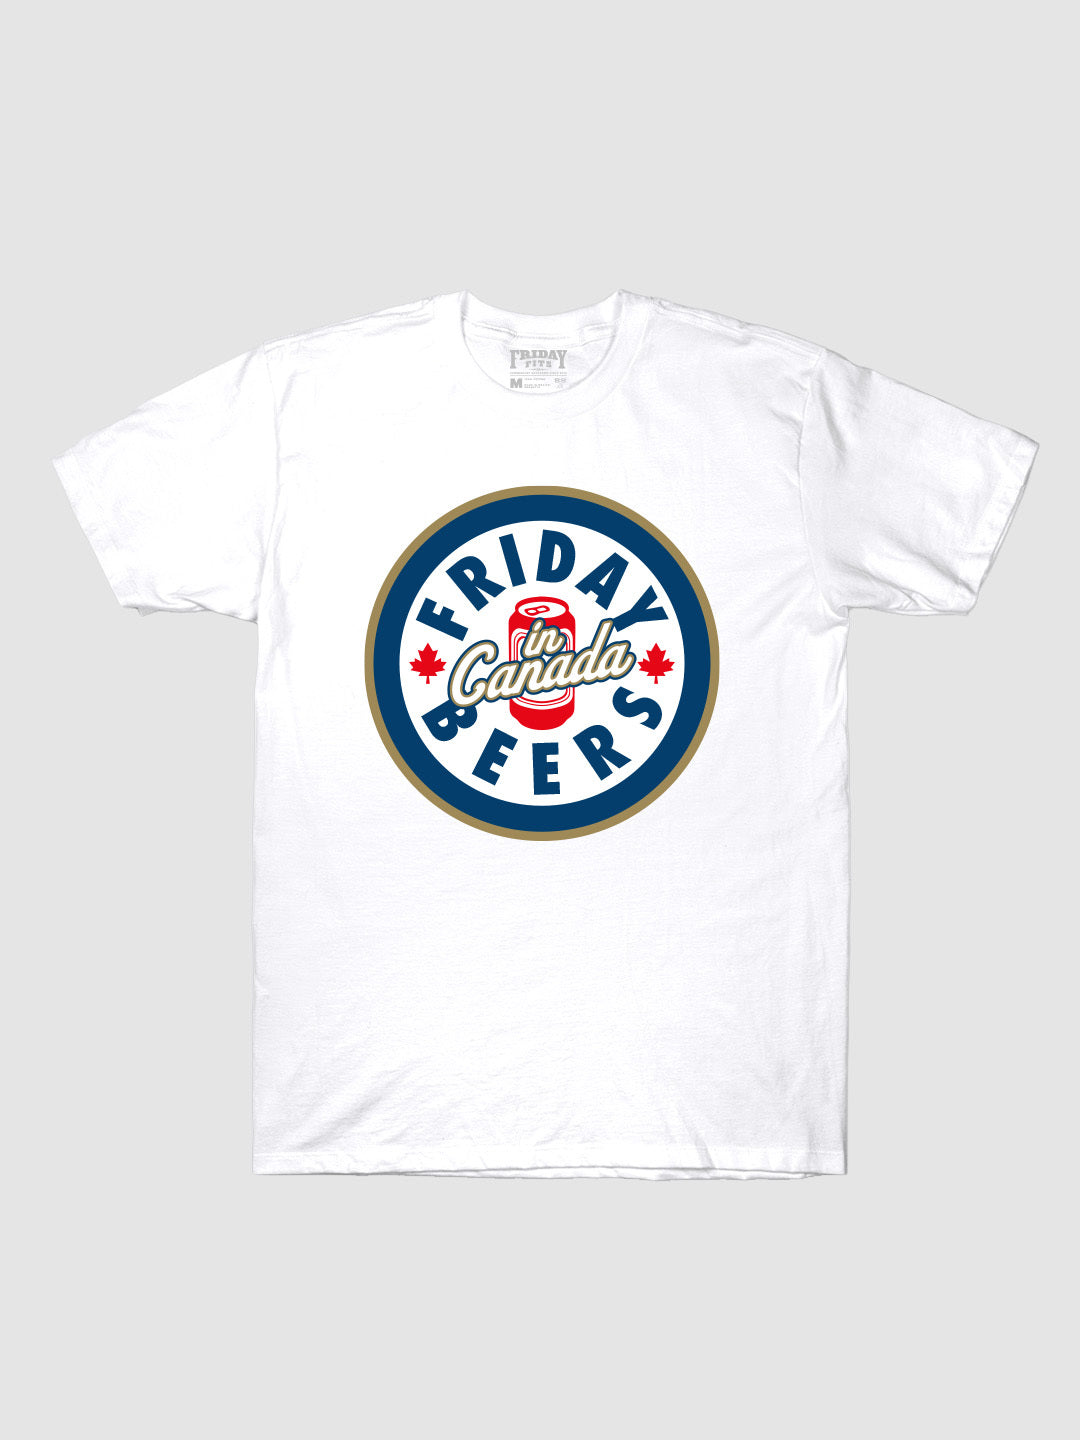 Friday Beers in Canada T-Shirt